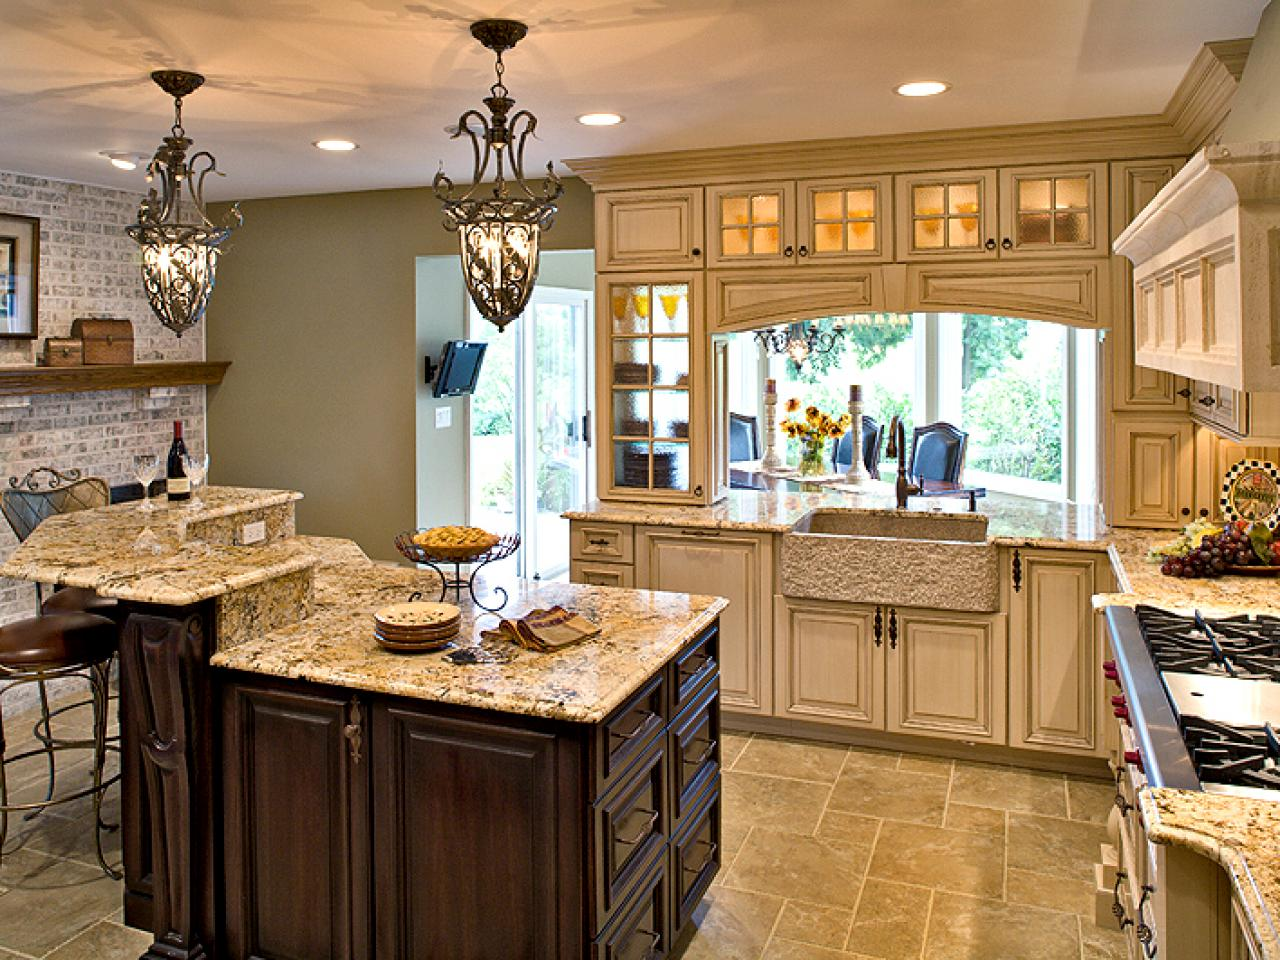 Under cabinet kitchen lighting pictures ideas from hgtv How do you design a kitchen